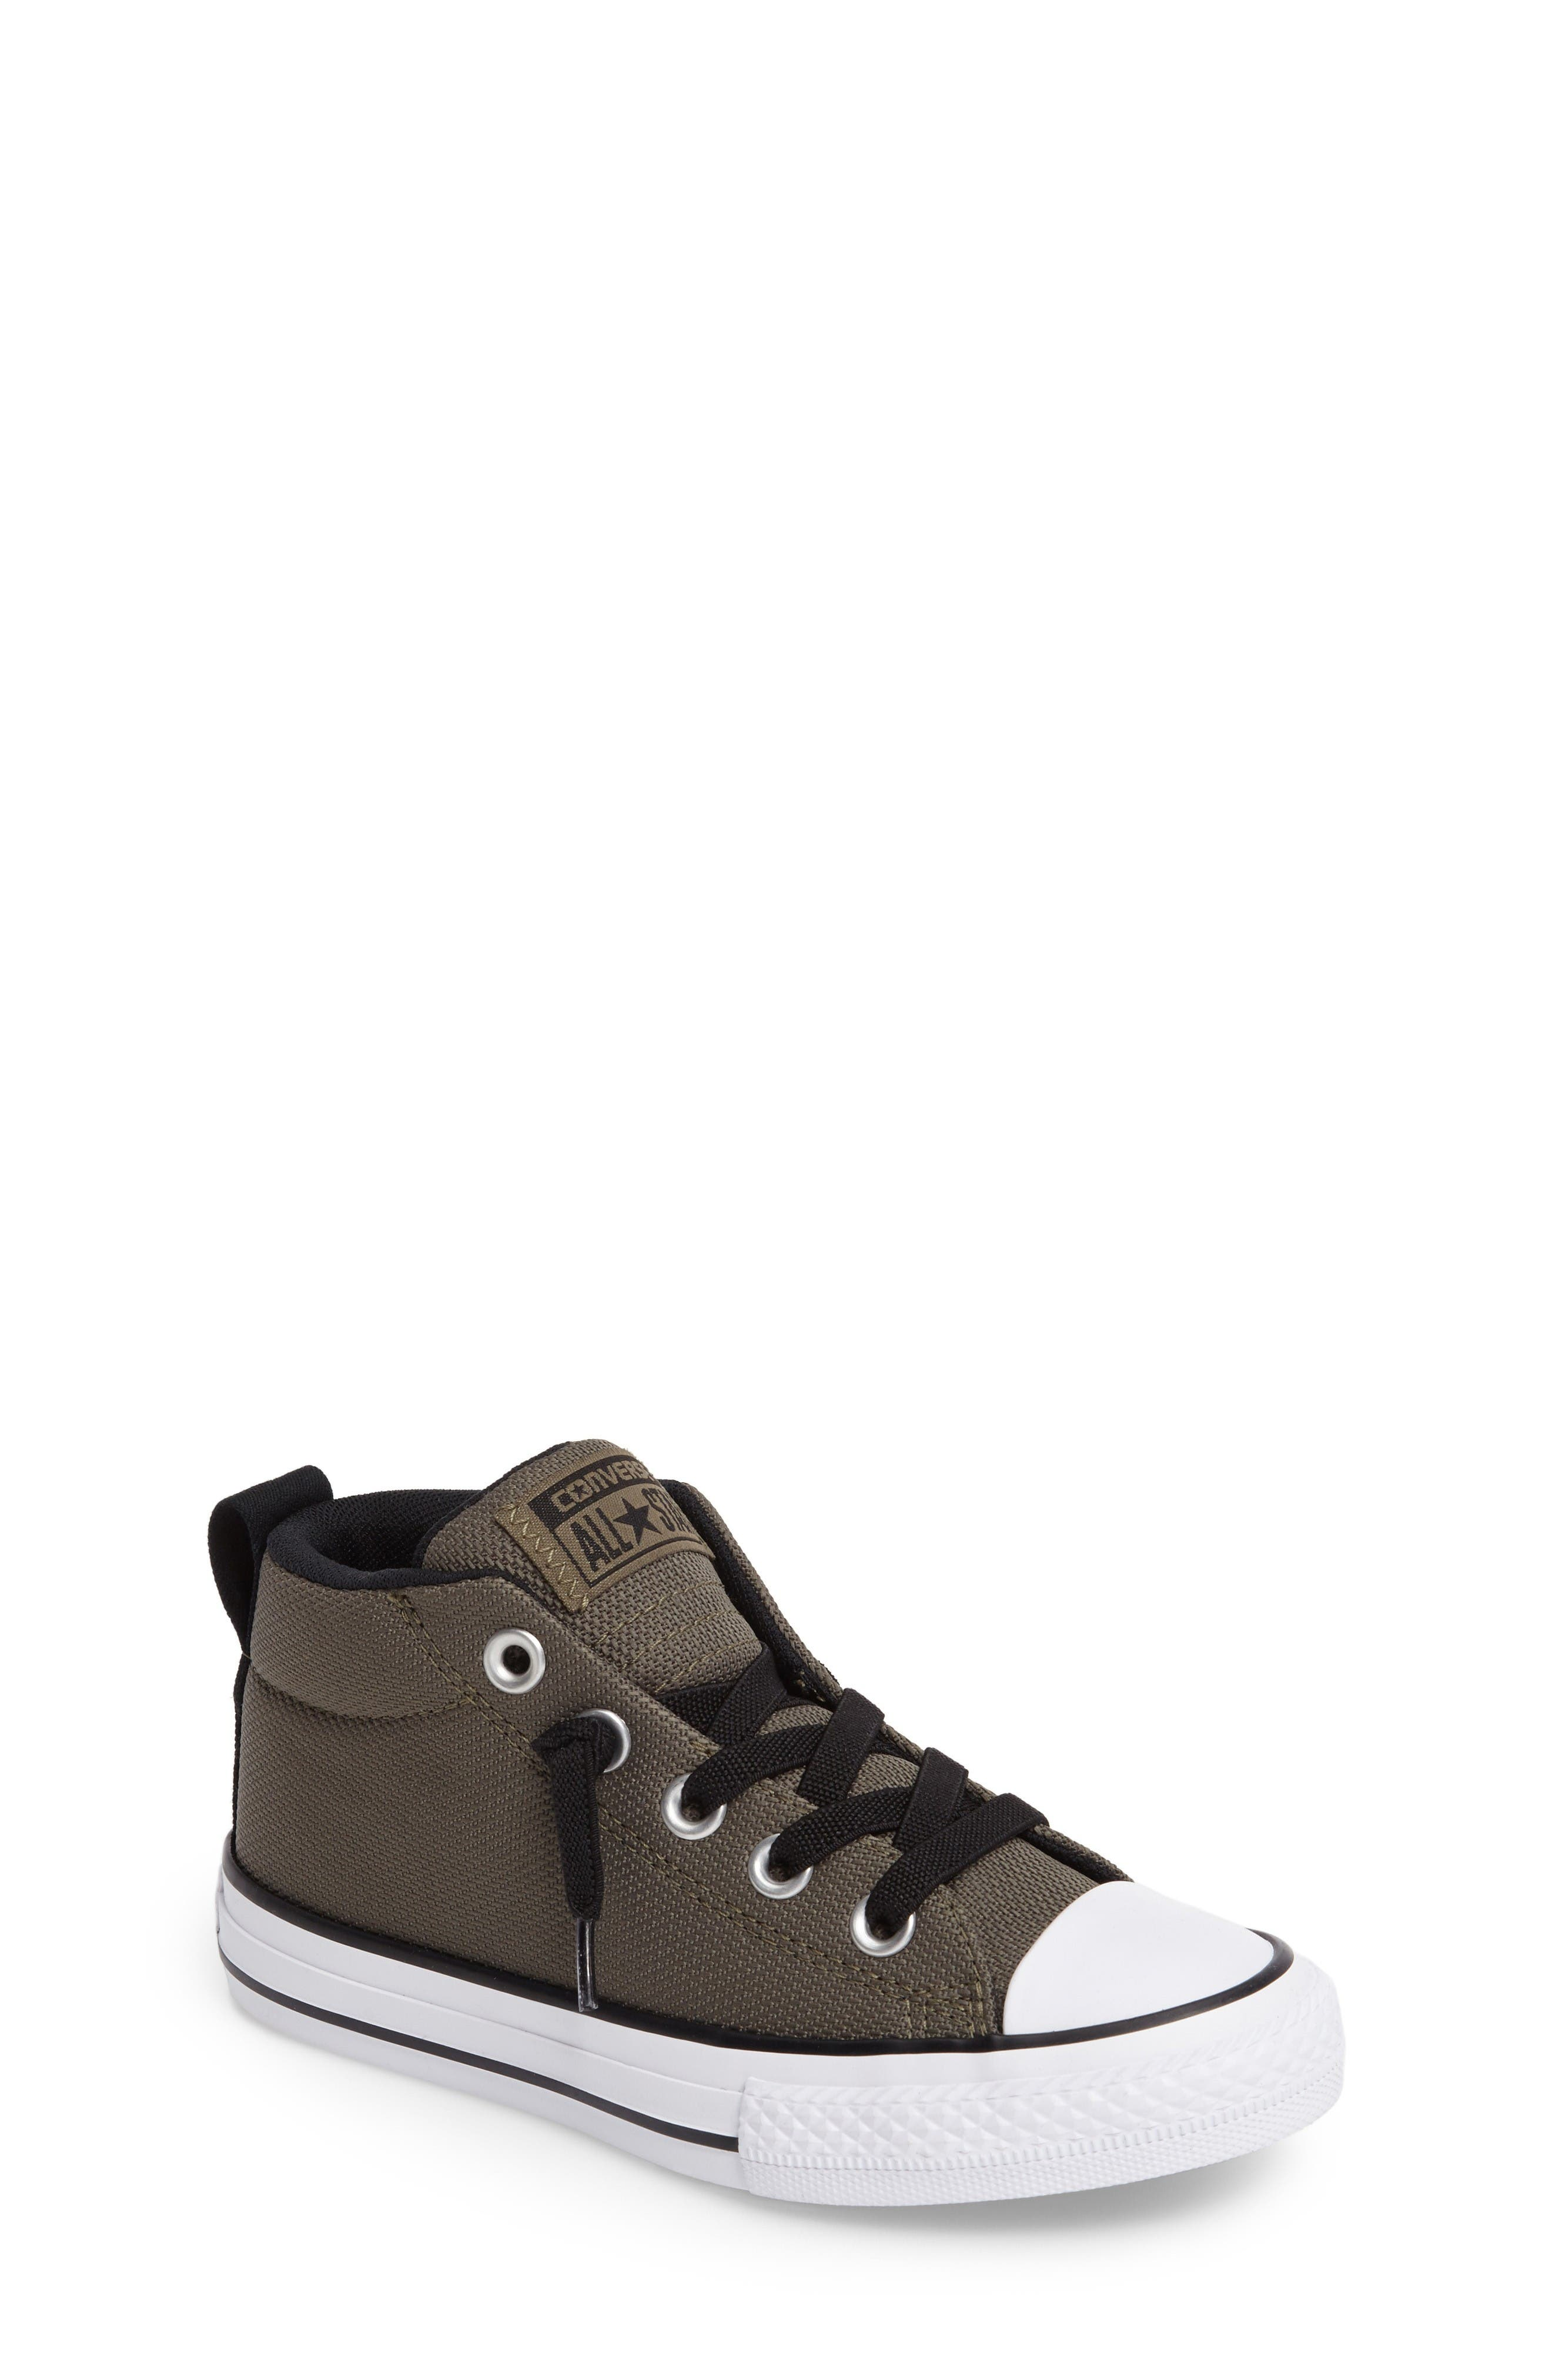 CONVERSE Chuck Taylor<sup>®</sup> All Star<sup>®</sup> Basket Weave Street Mid Sneaker